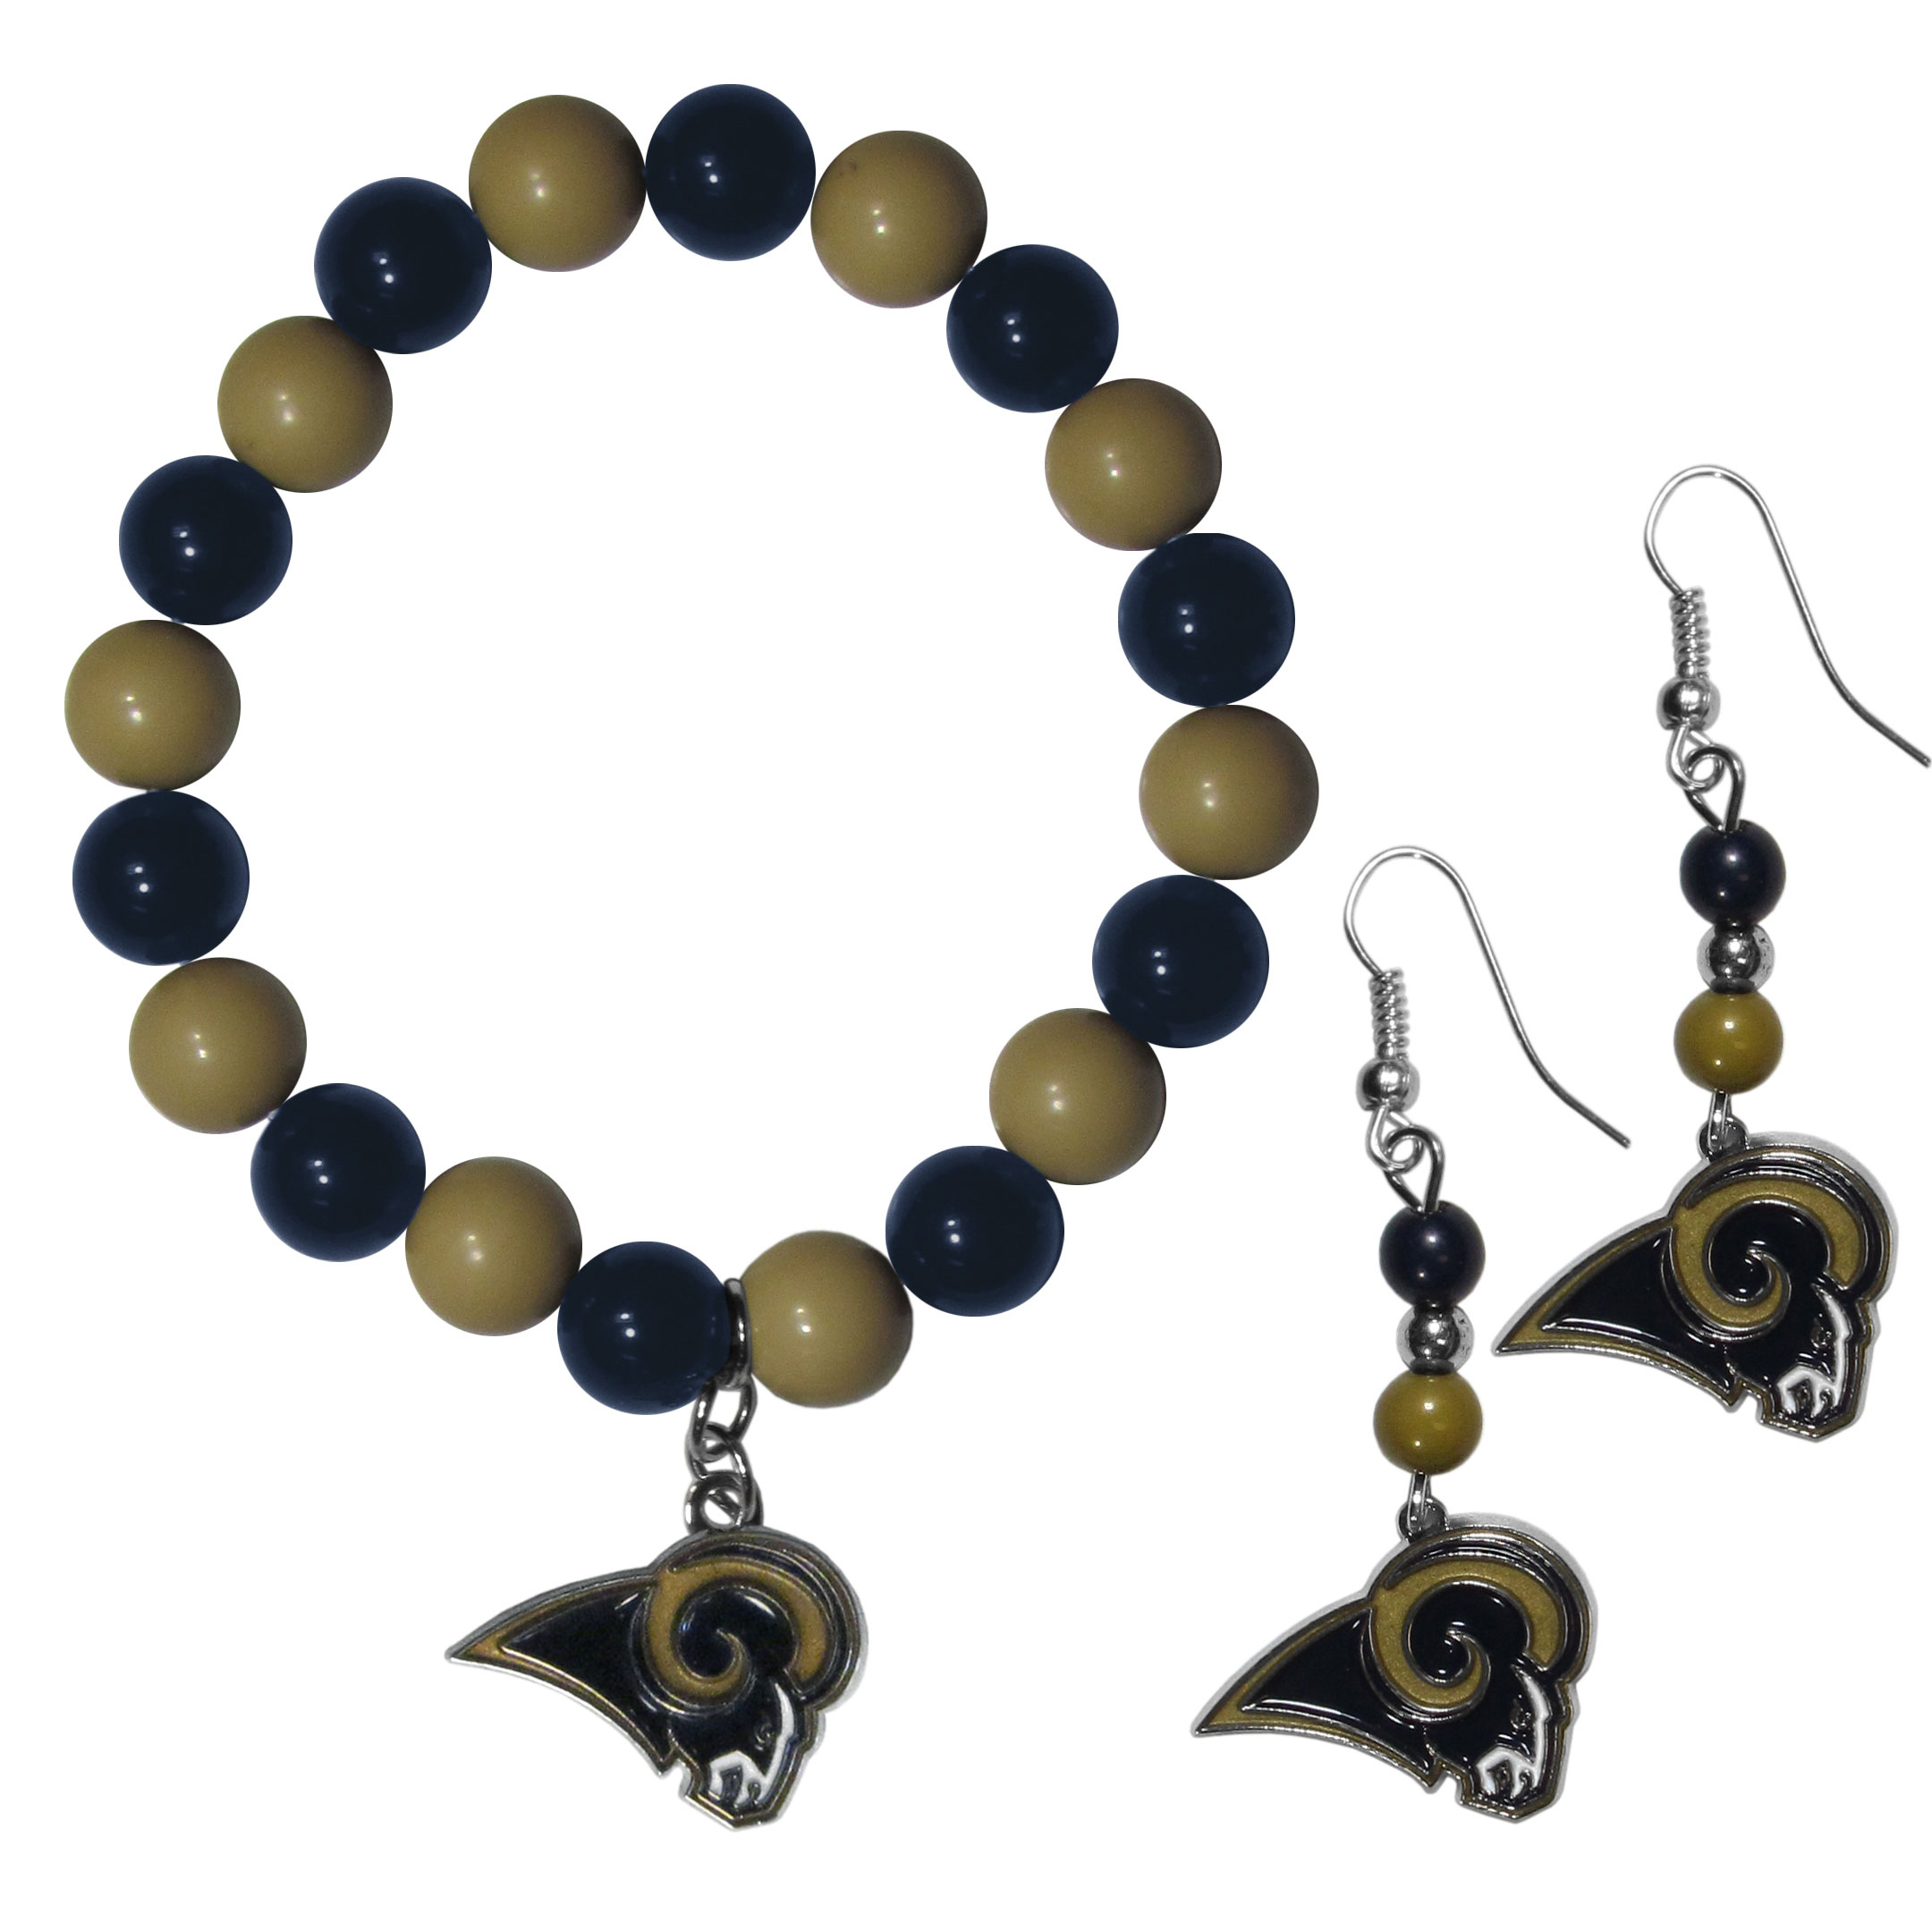 Los Angeles Rams Fan Bead Earrings and Bracelet Set - This fun and colorful Los Angeles Rams fan bead jewelry set is fun and casual with eye-catching beads in bright team colors. The fashionable dangle earrings feature a team colored beads that drop down to a carved and enameled charm. The stretch bracelet has larger matching beads that make a striking statement and have a matching team charm. These sassy yet sporty jewelry pieces make a perfect gift for any female fan. Spice up your game-day outfit with these fun colorful earrings and bracelet that are also cute enough for any day.